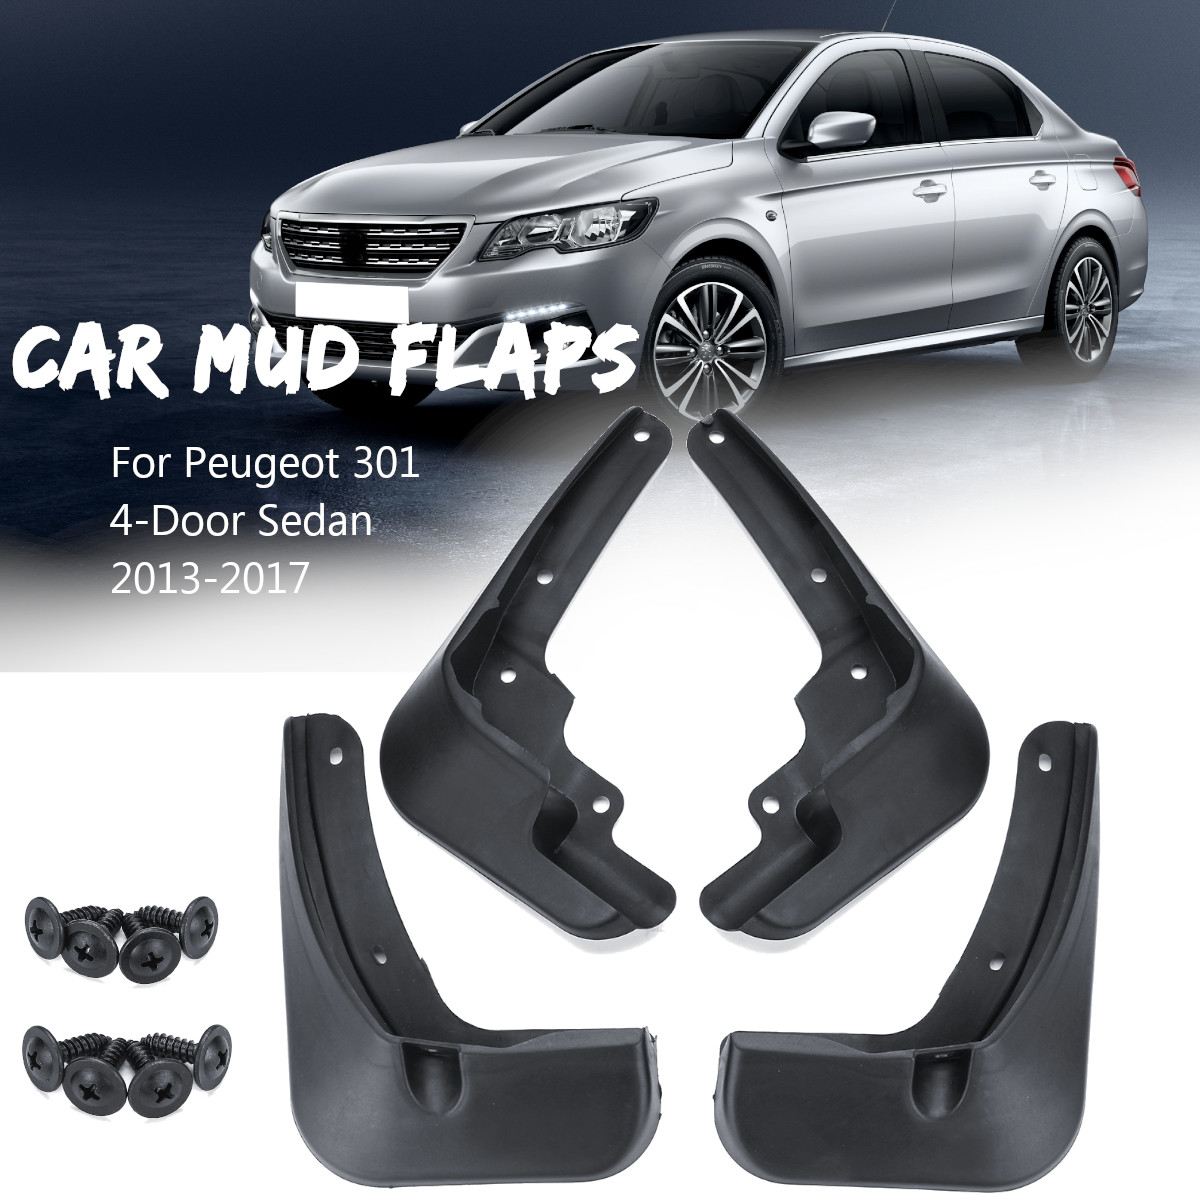 4PCS Black Front Rear Splash Guard Mud Flaps For 2018 Honda Accord 4-DR Sedan